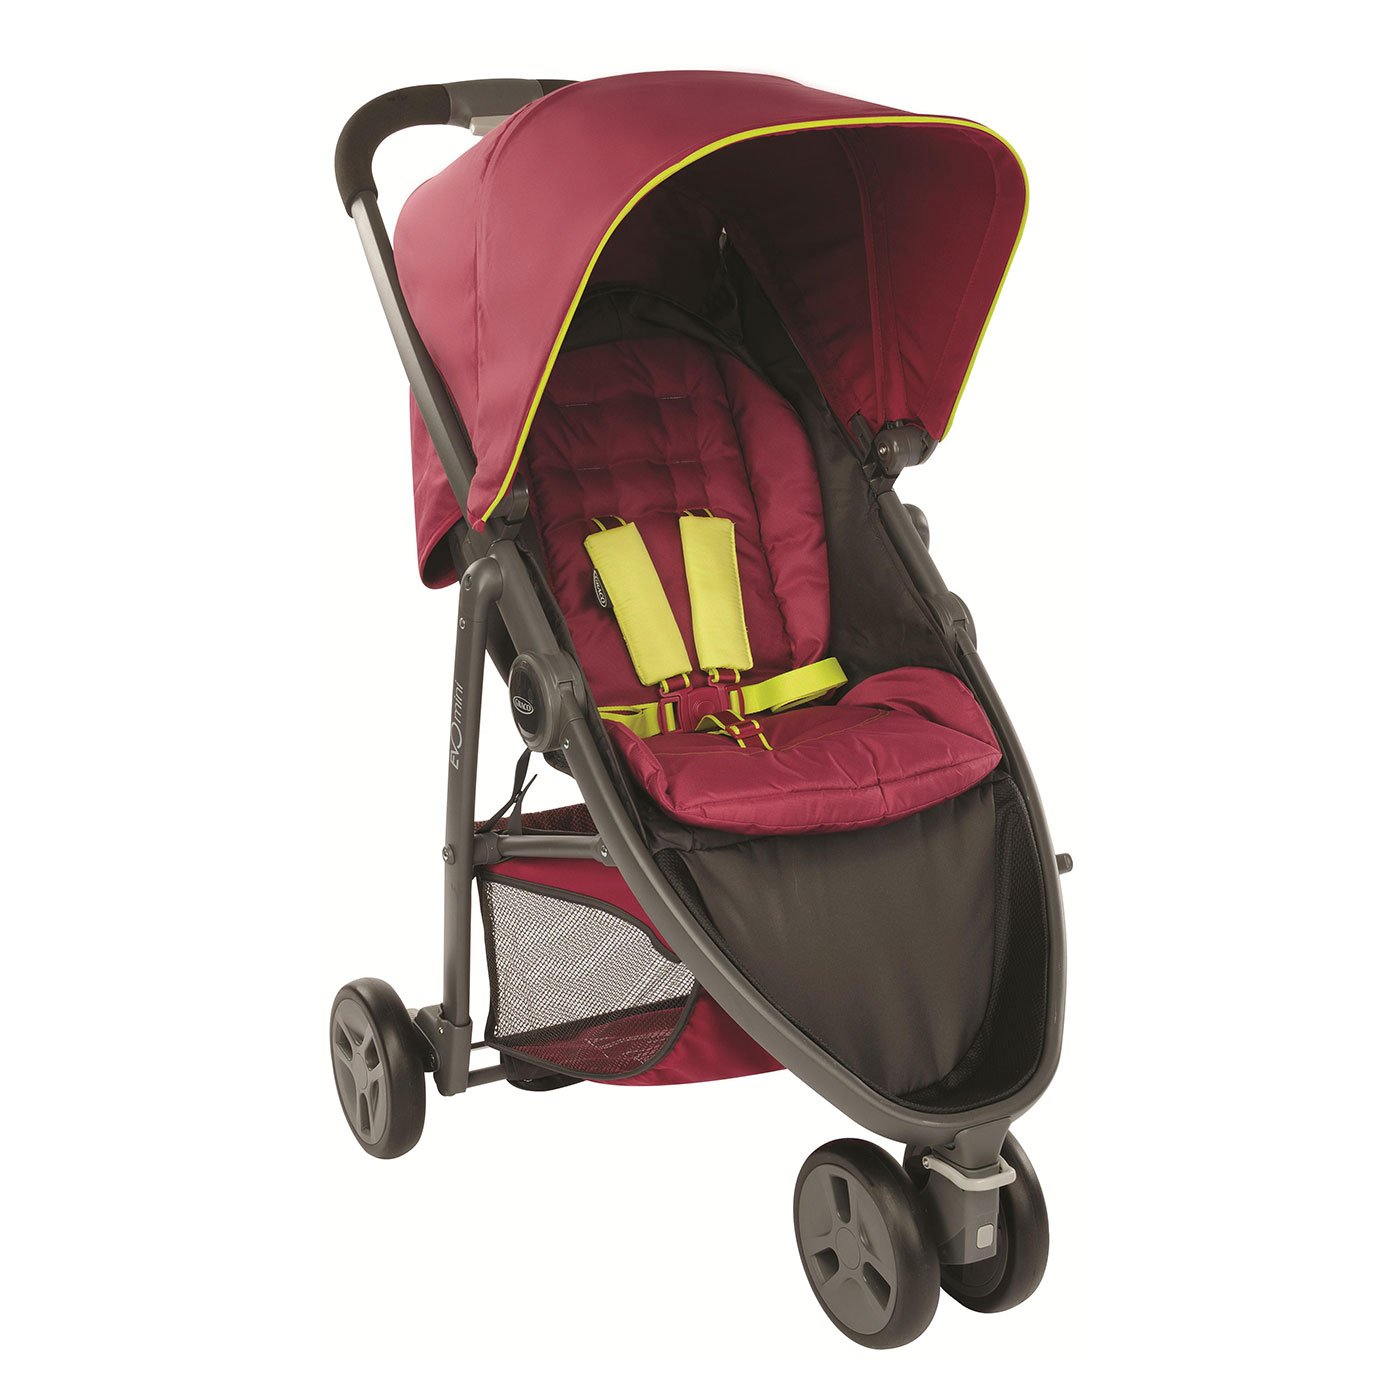 Graco Evo Mini Pushchair Compact and Lightweight